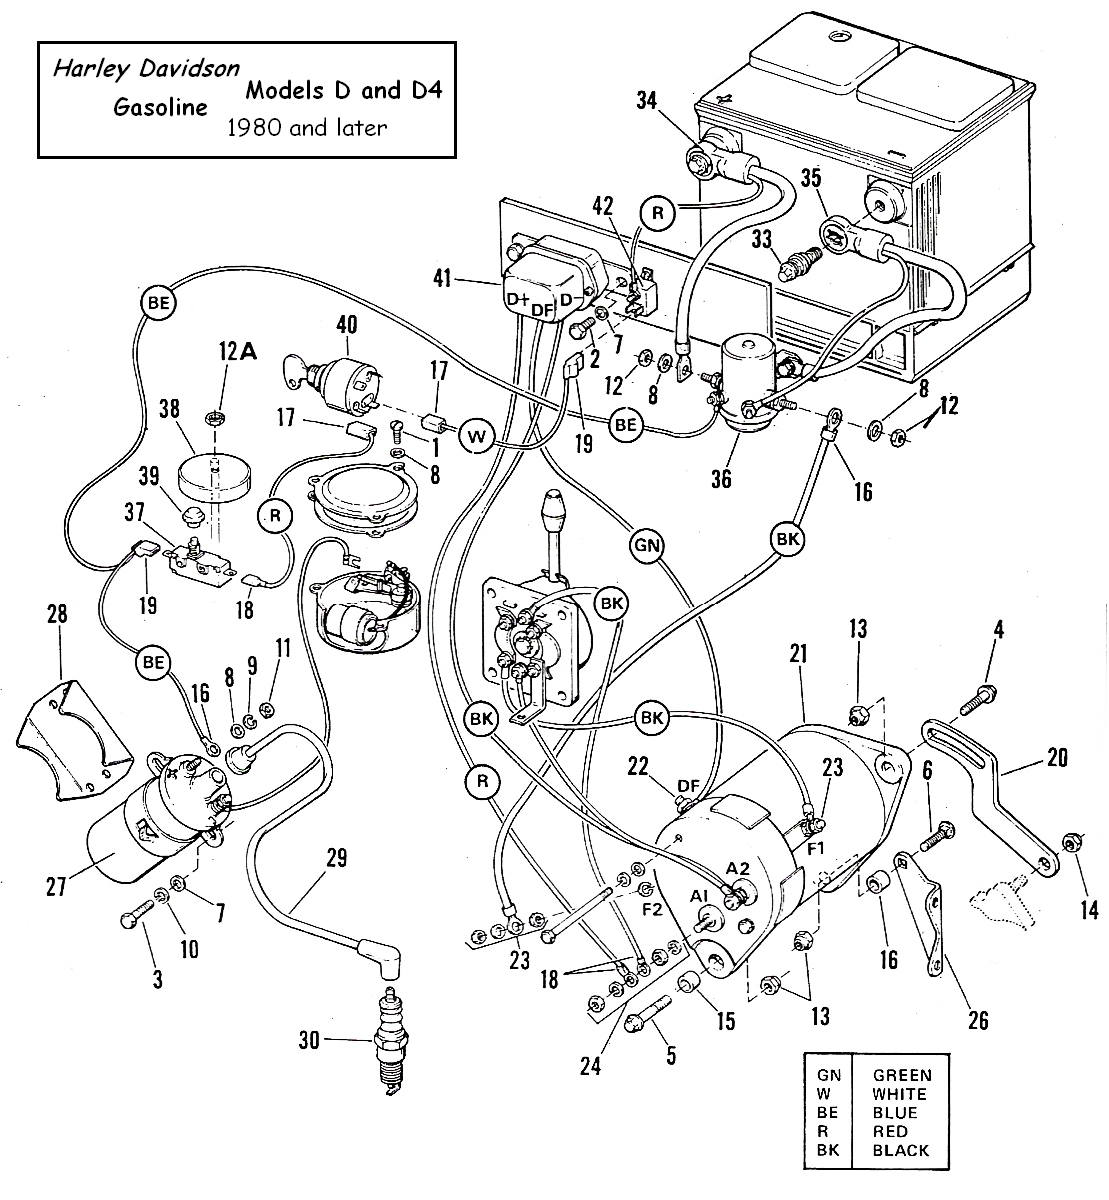 Harley Davidson Gas Golf Cart Wiring Diagram | Wiring Diagram - Harley Davidson Wiring Diagram